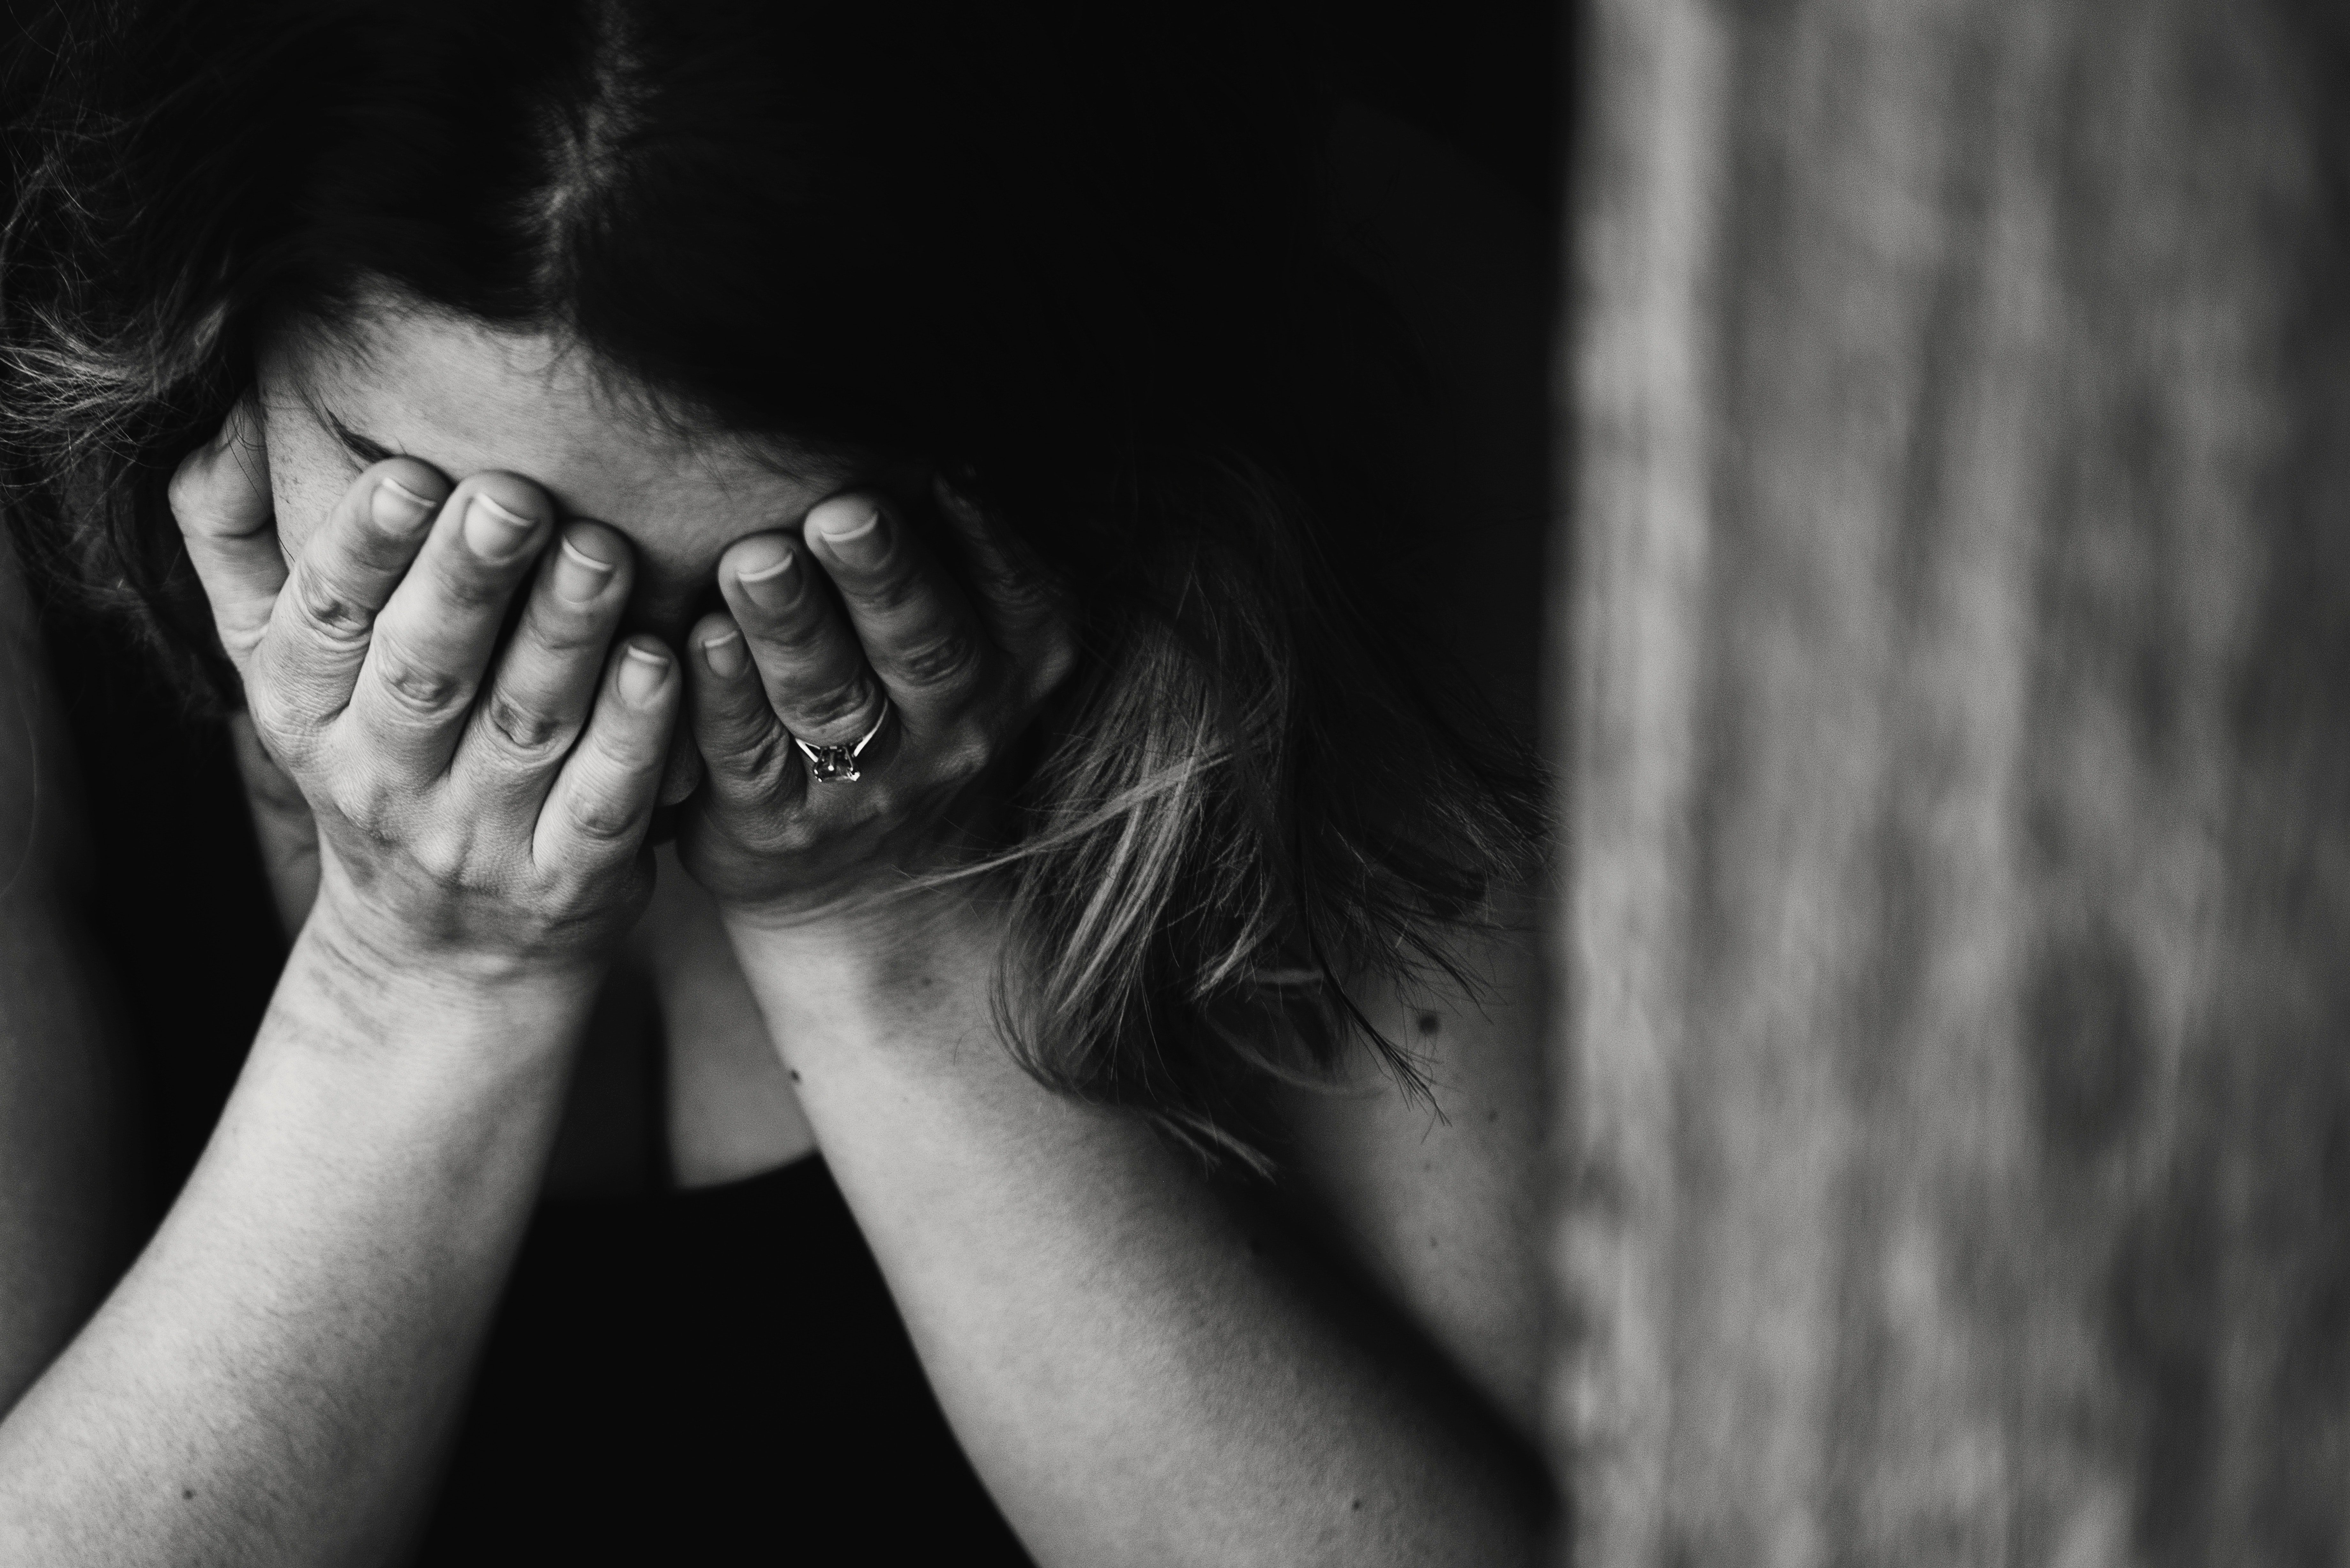 A crying woman | Photo: Pexels